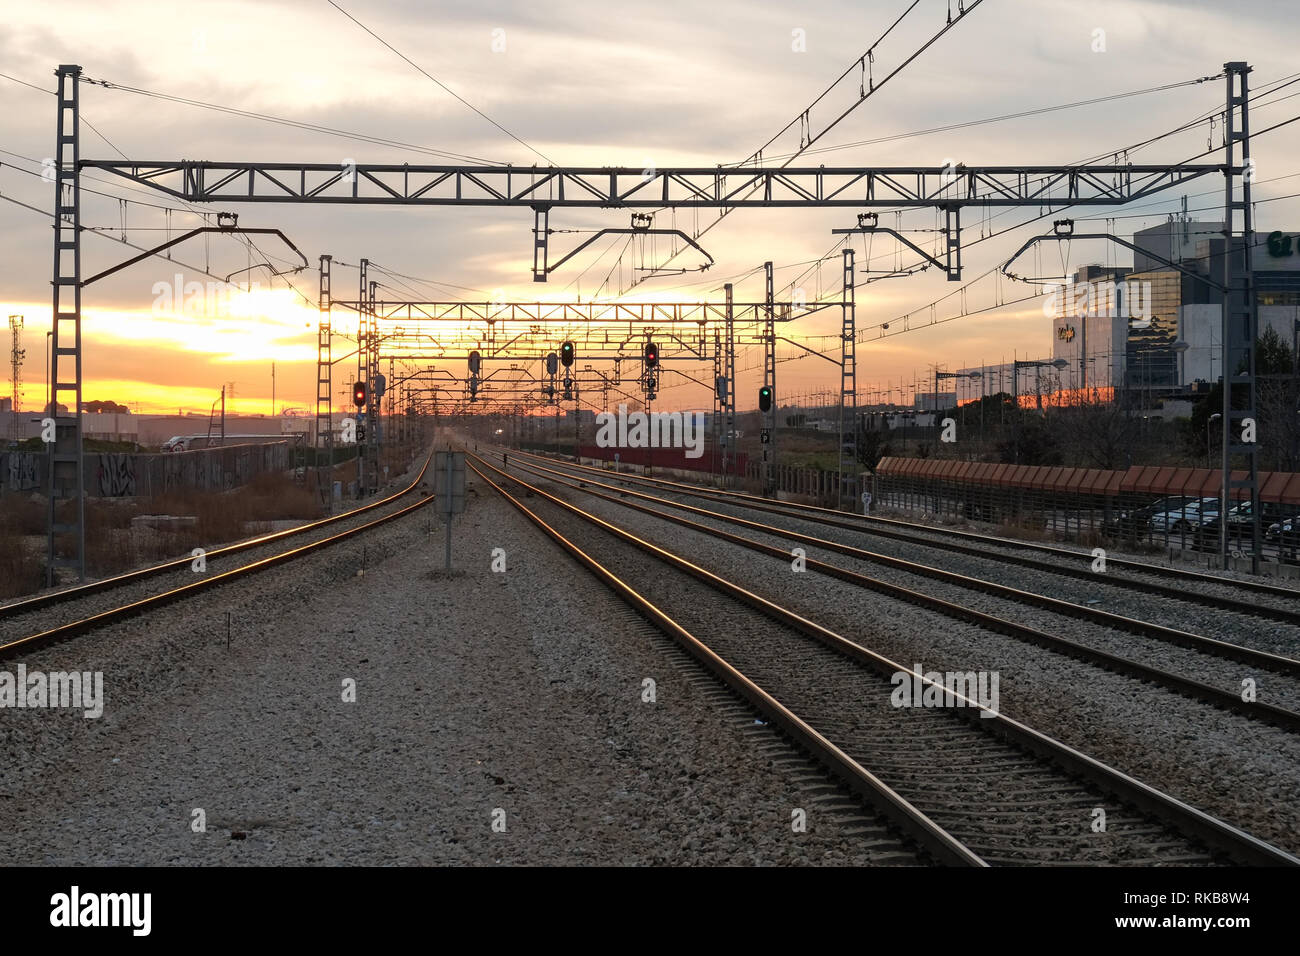 Railway lines looking into the sunset from La Garena station - Stock Image